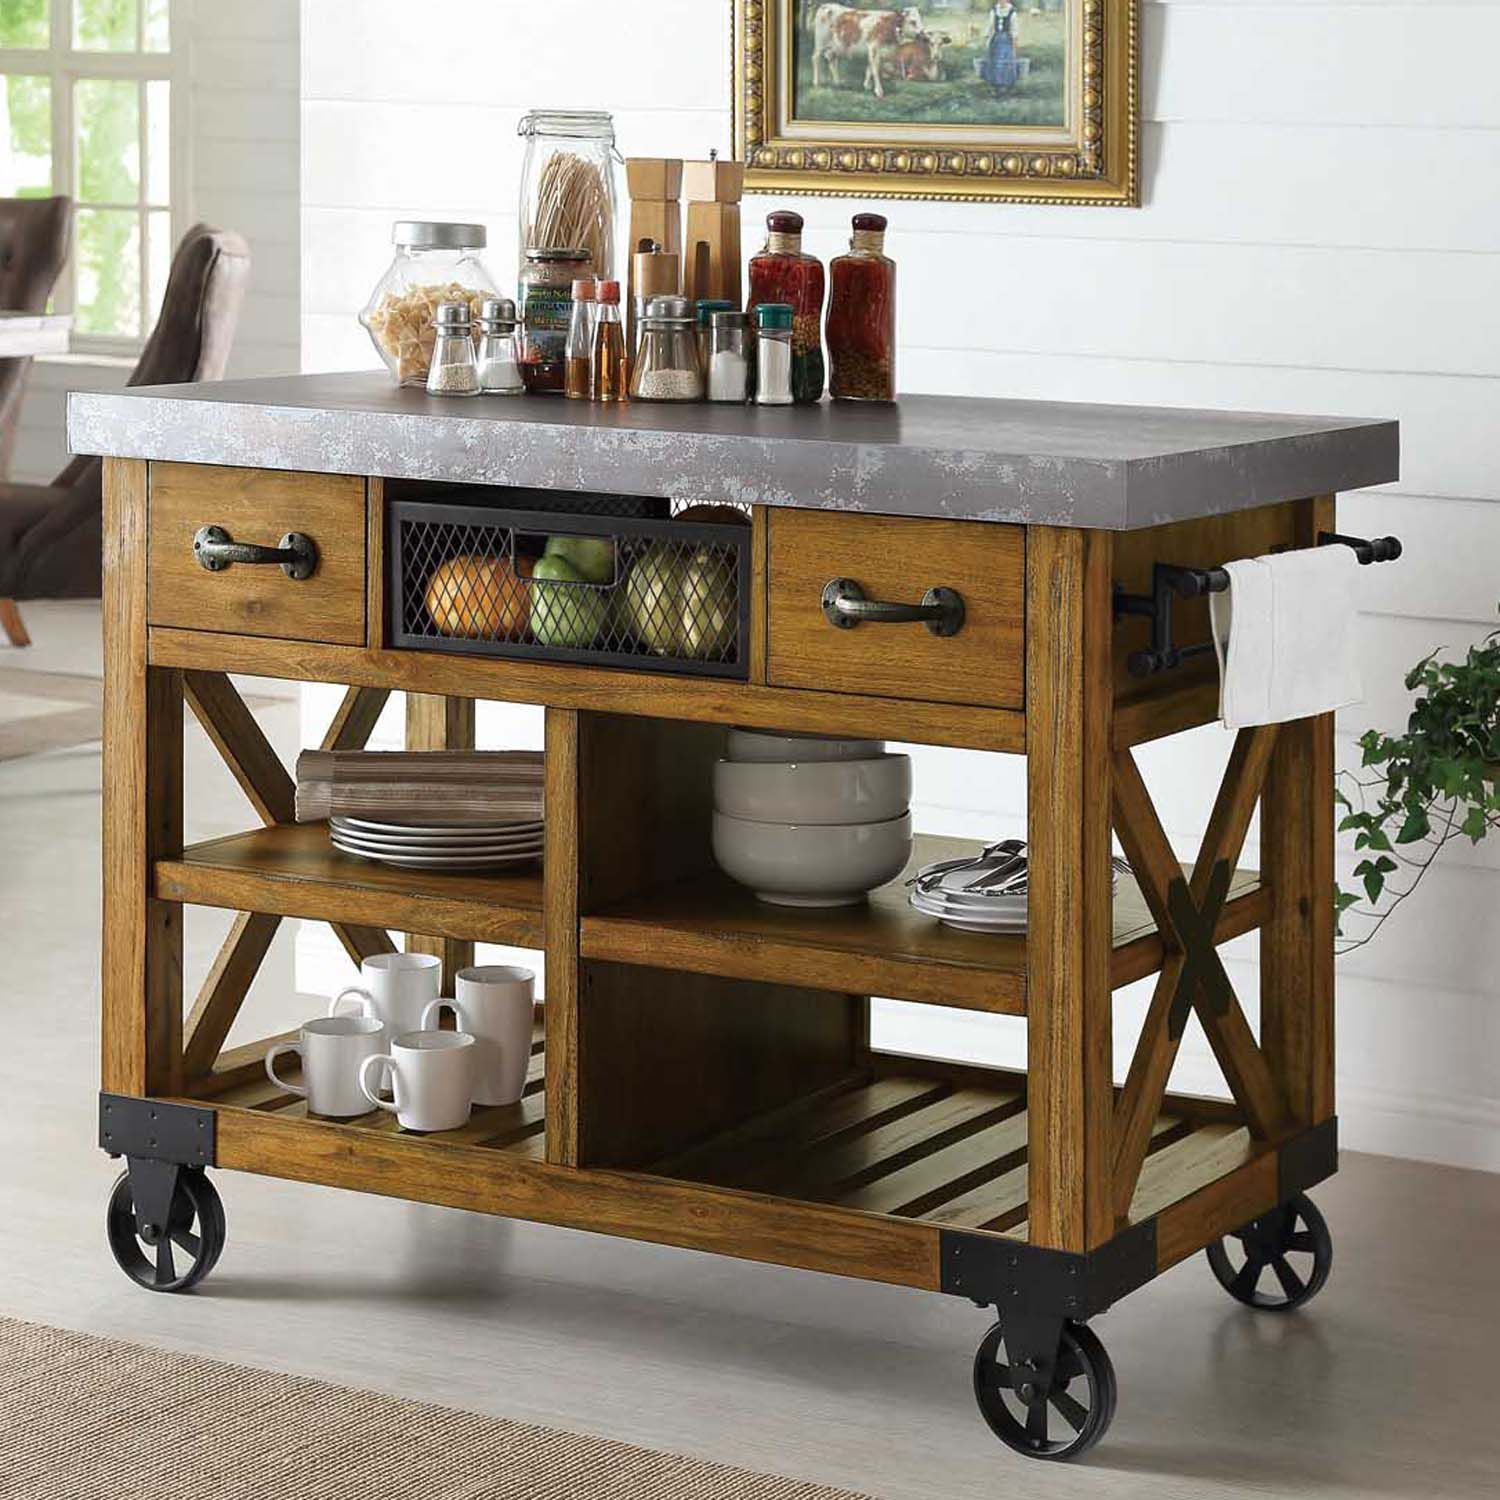 Rachel Serving Cart Sam 39 S Club Gift Ideas Pinterest Desserte Cuisine Ilot Et Ilot Cuisine